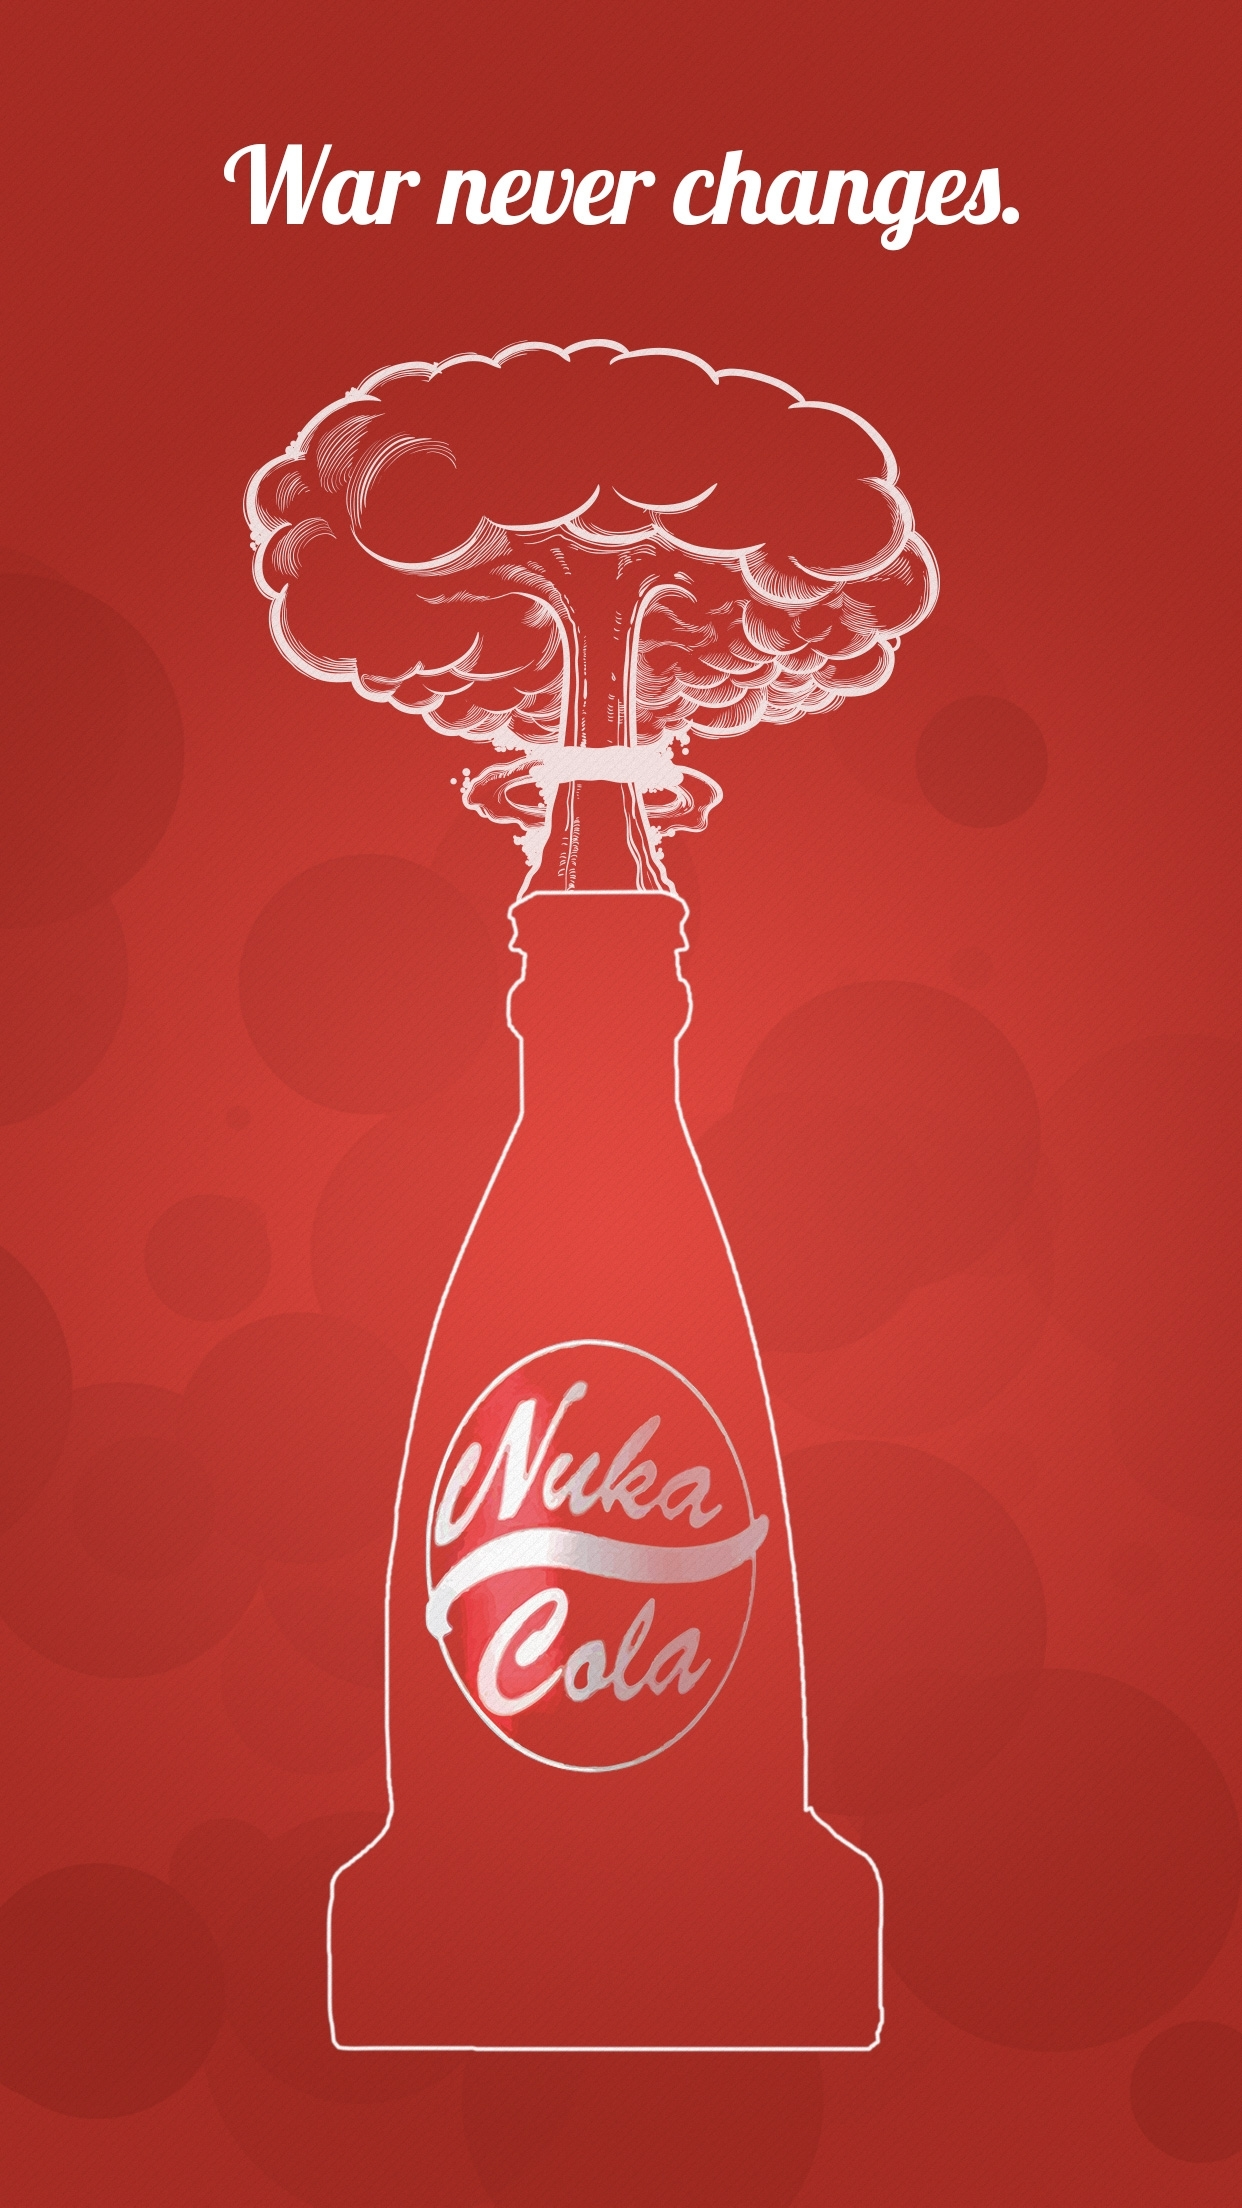 fallout 4 nuka cola wallpapers - mobile and desktop versions